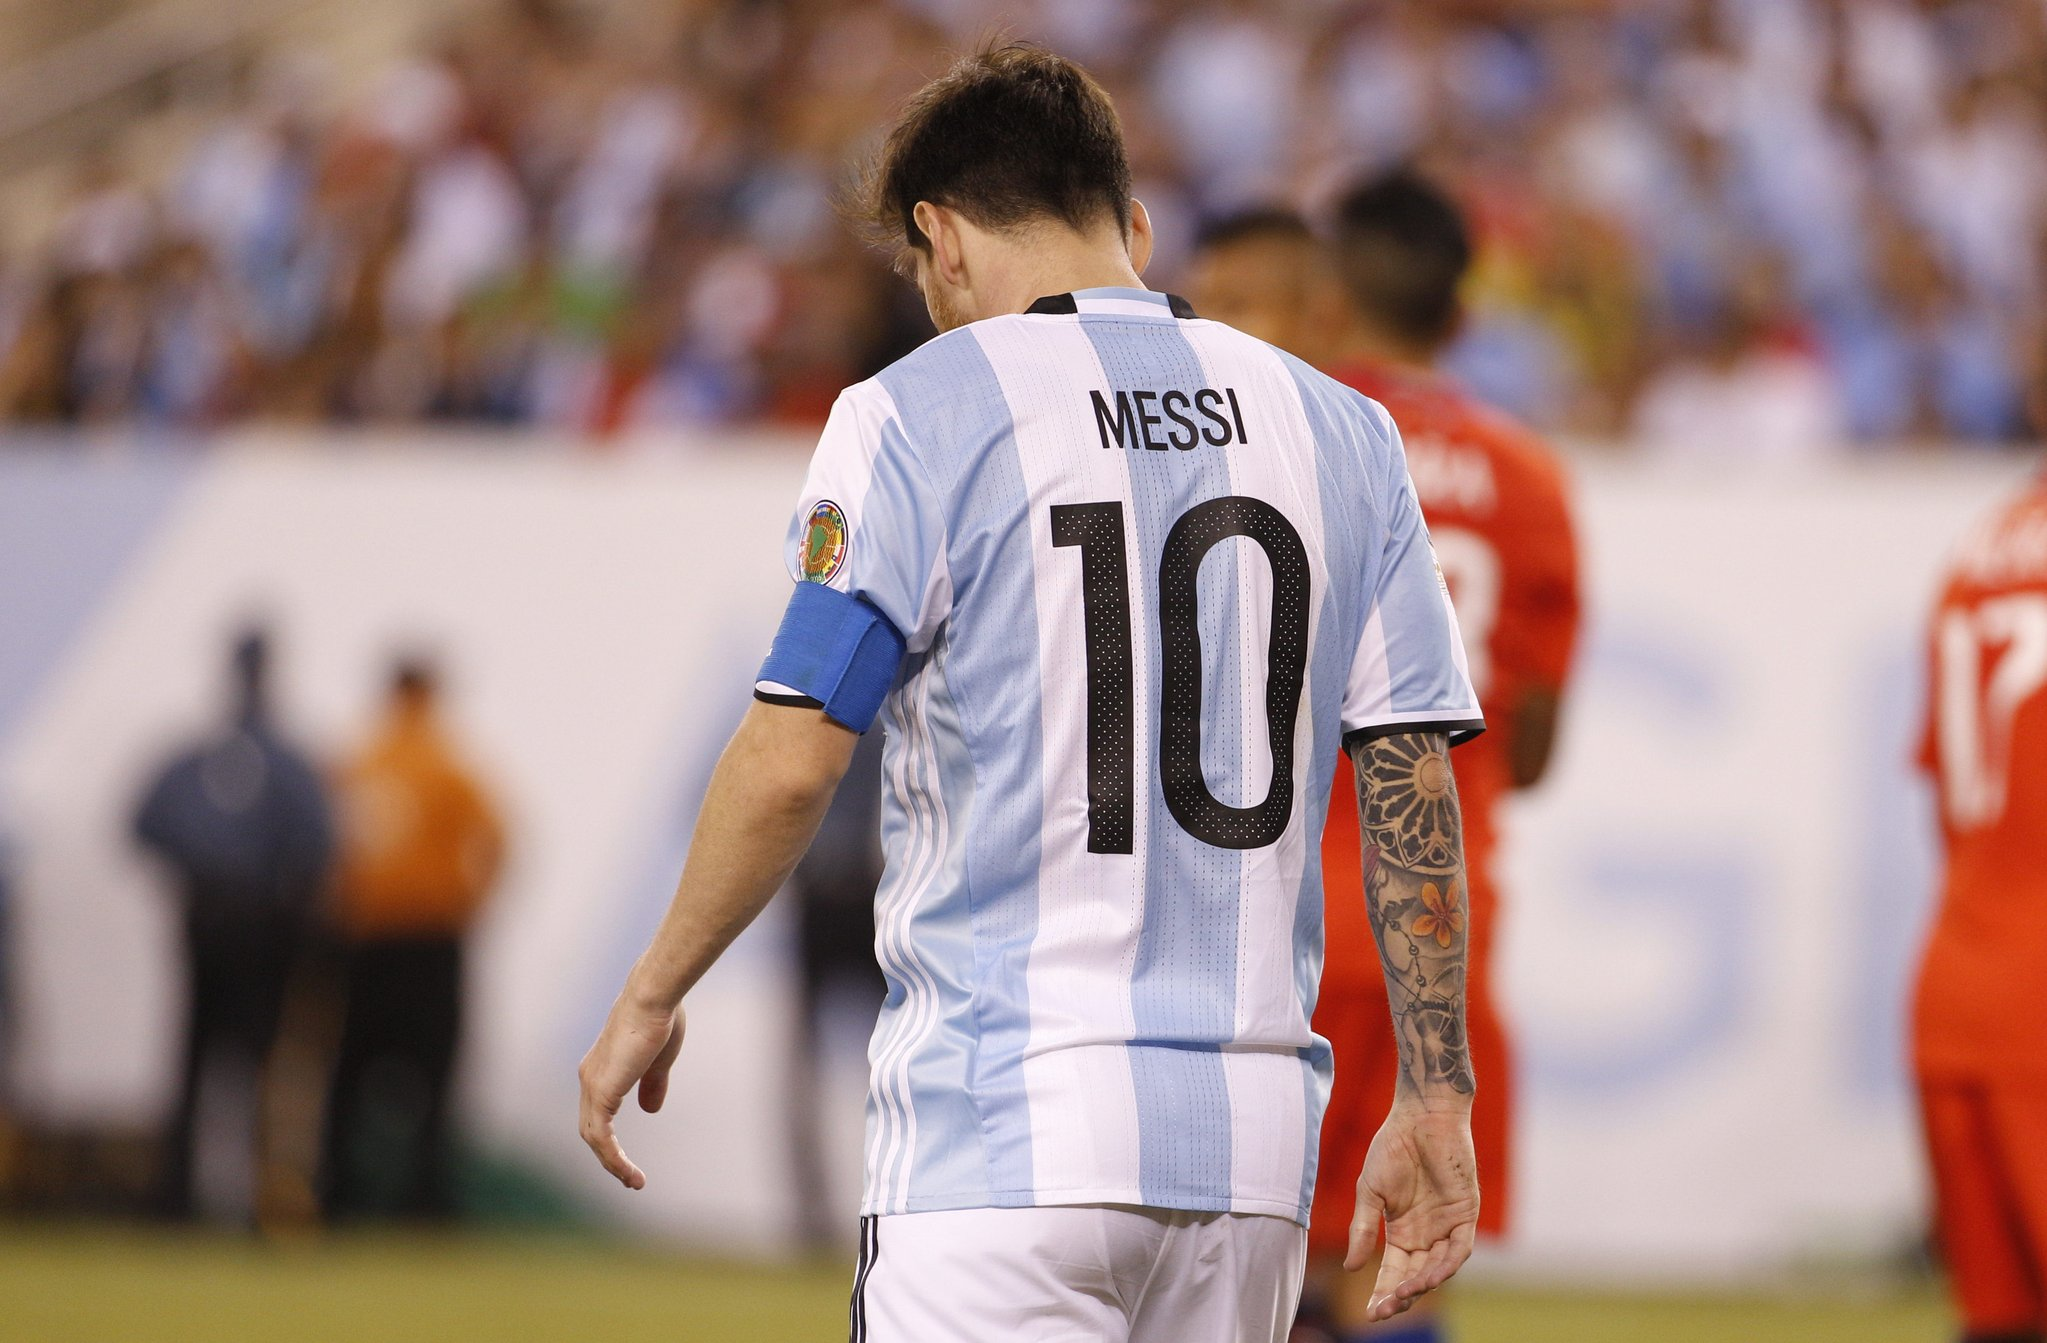 DON'T WALK AWAY: Argentina President, People Beg Messi